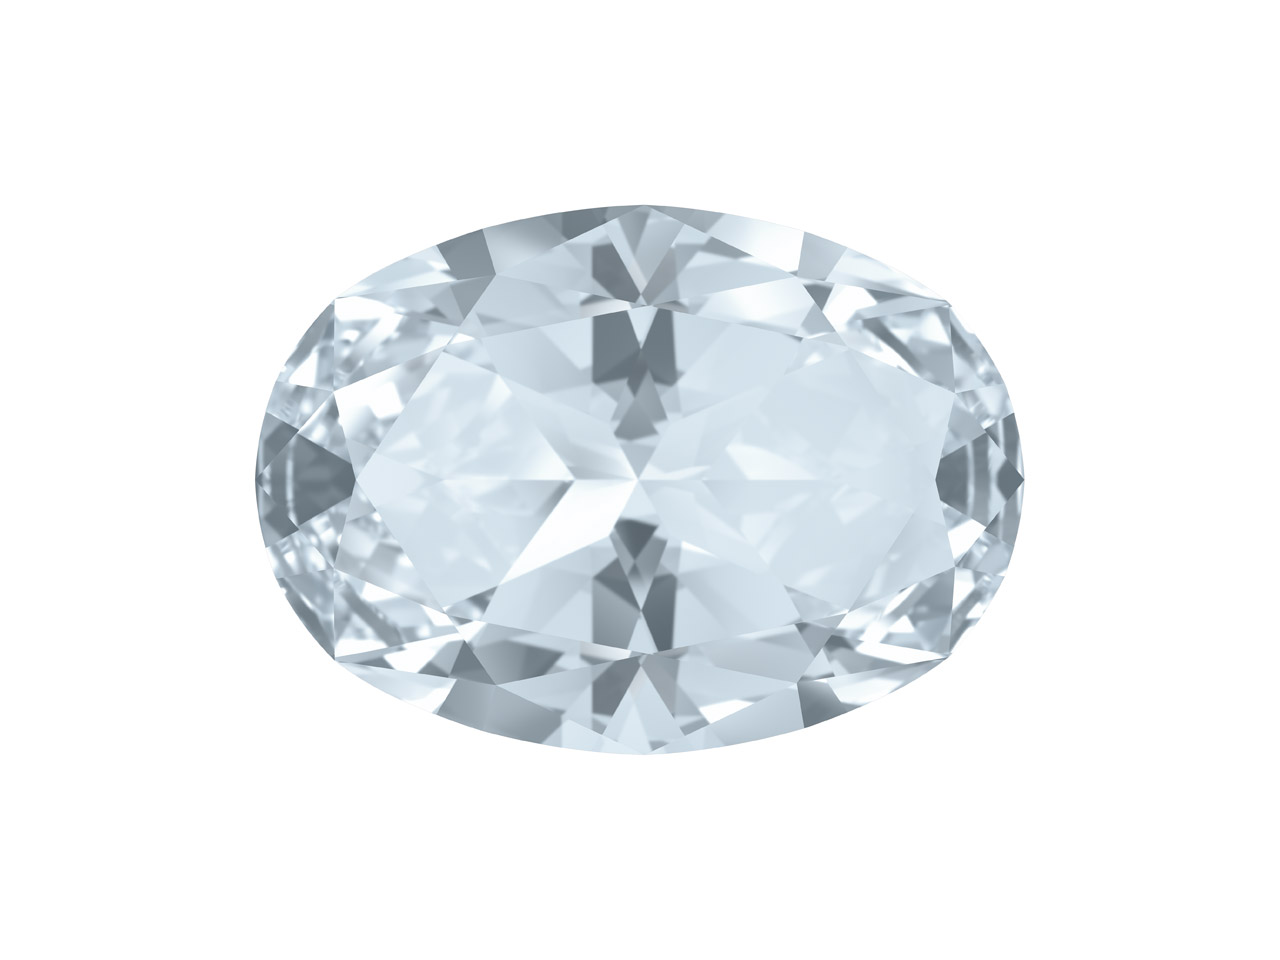 Swarovski Gemstones Genuine Topaz  Oval Star Cut 6x4mm White